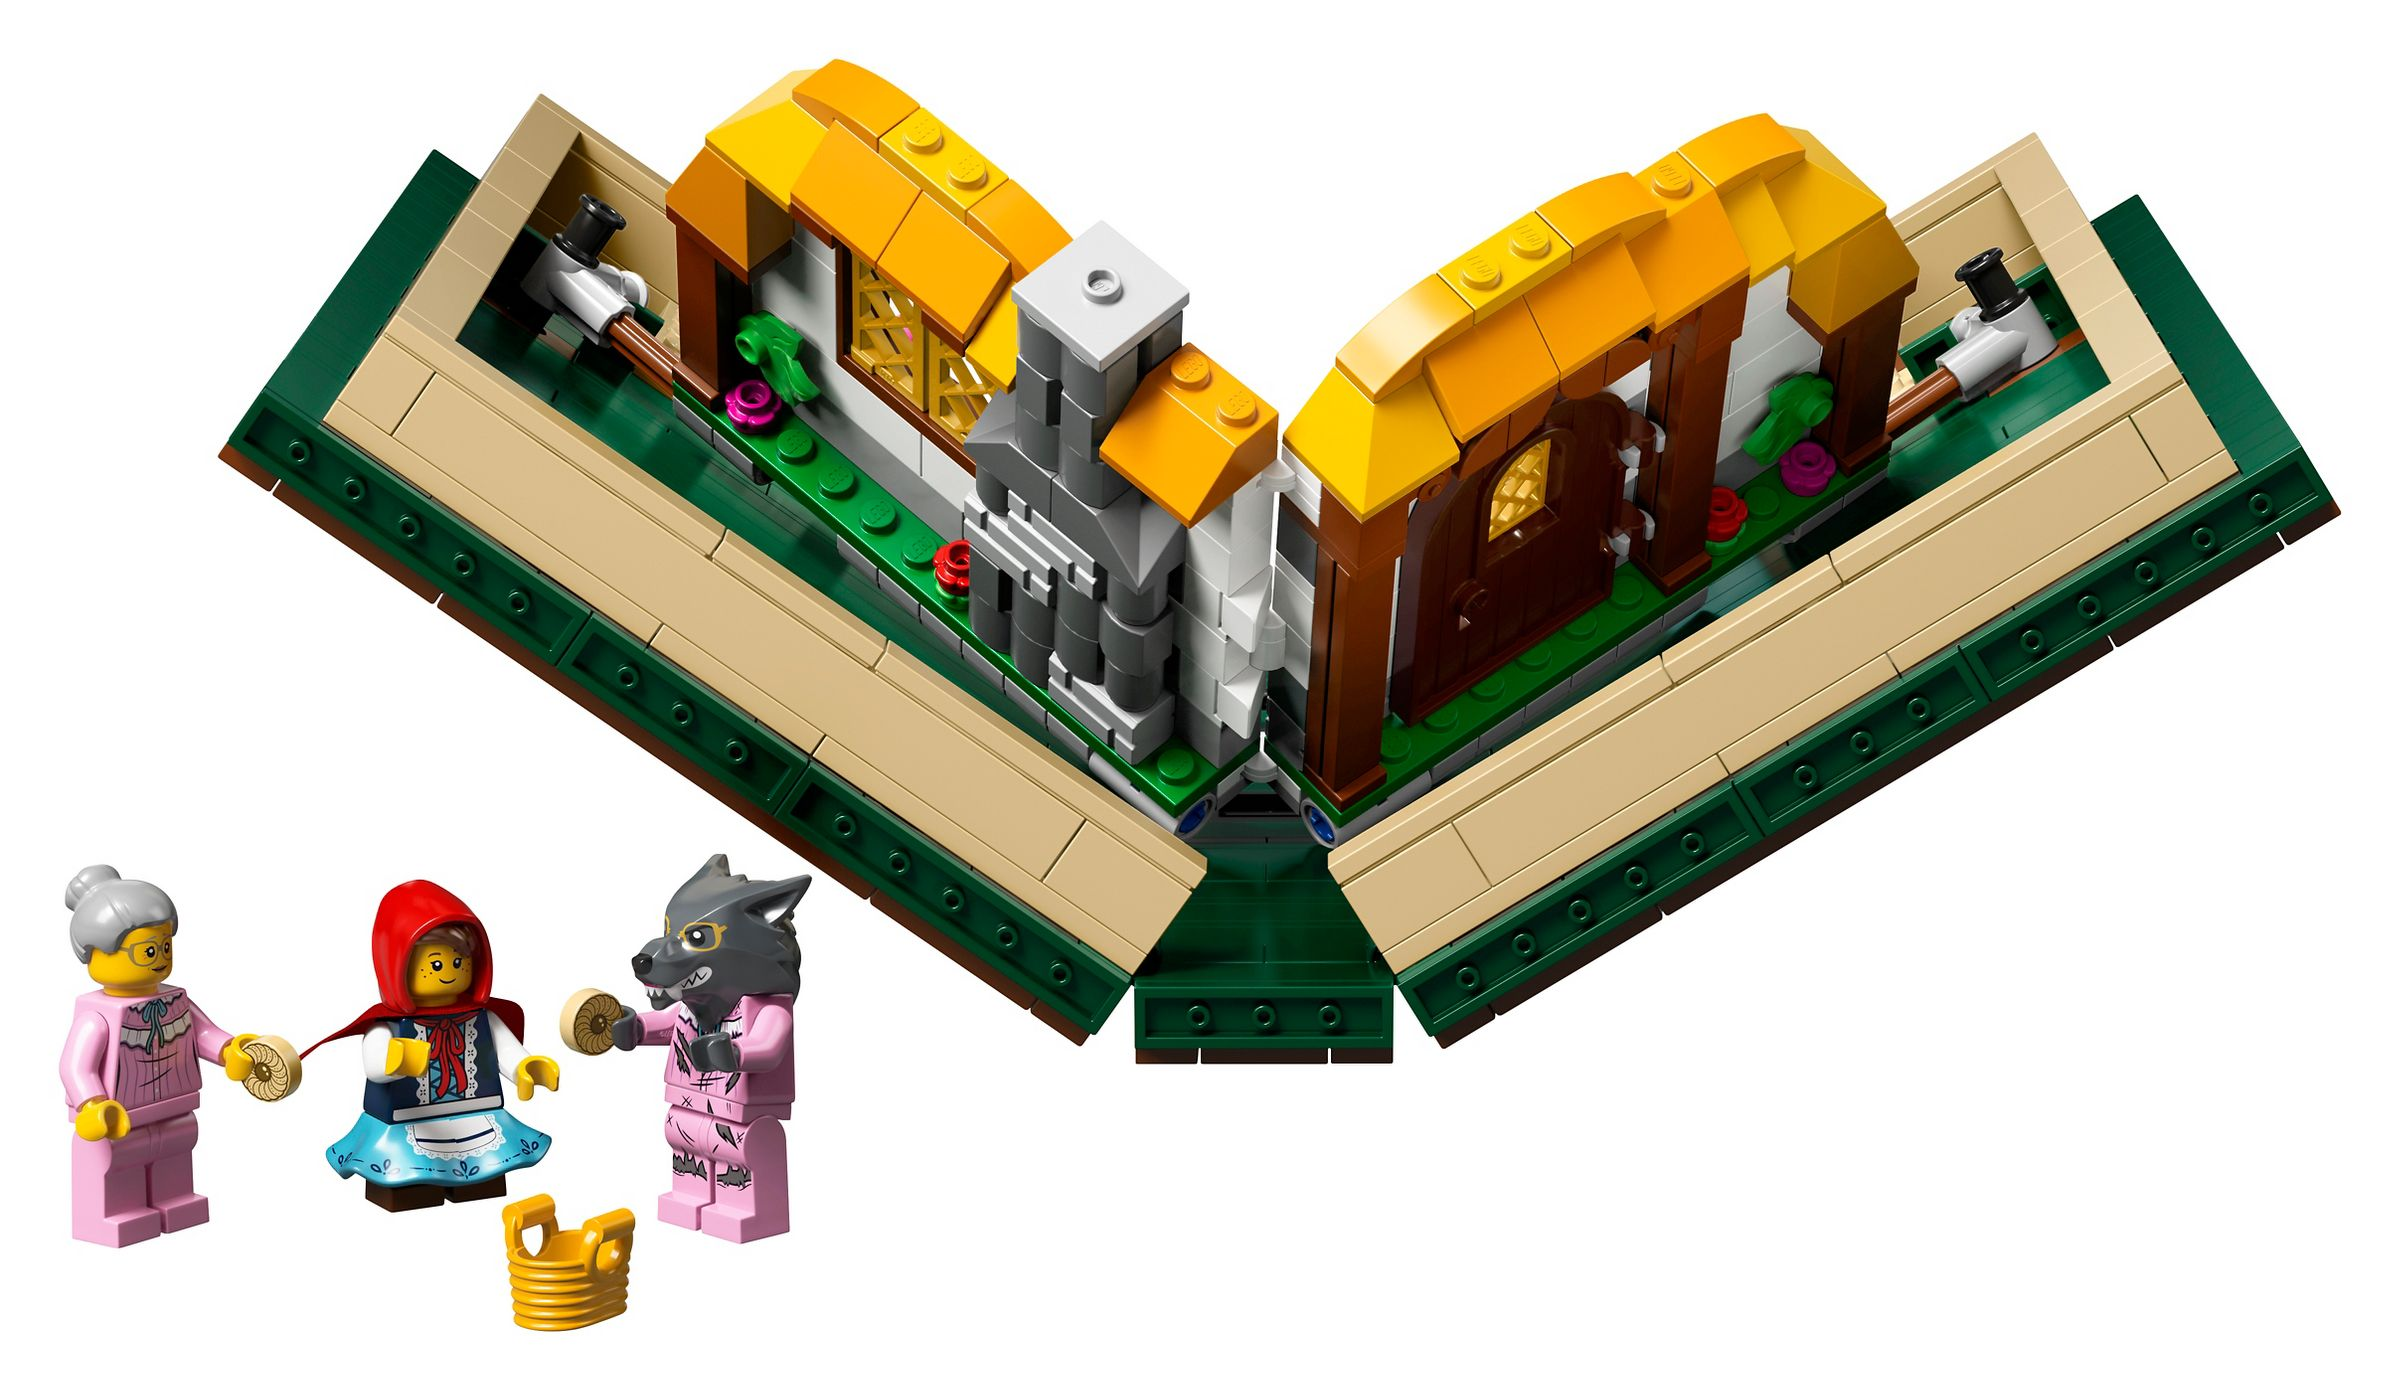 LEGO Ideas 21315 Pop-Up-Buch LEGO_21315_alt3.jpg